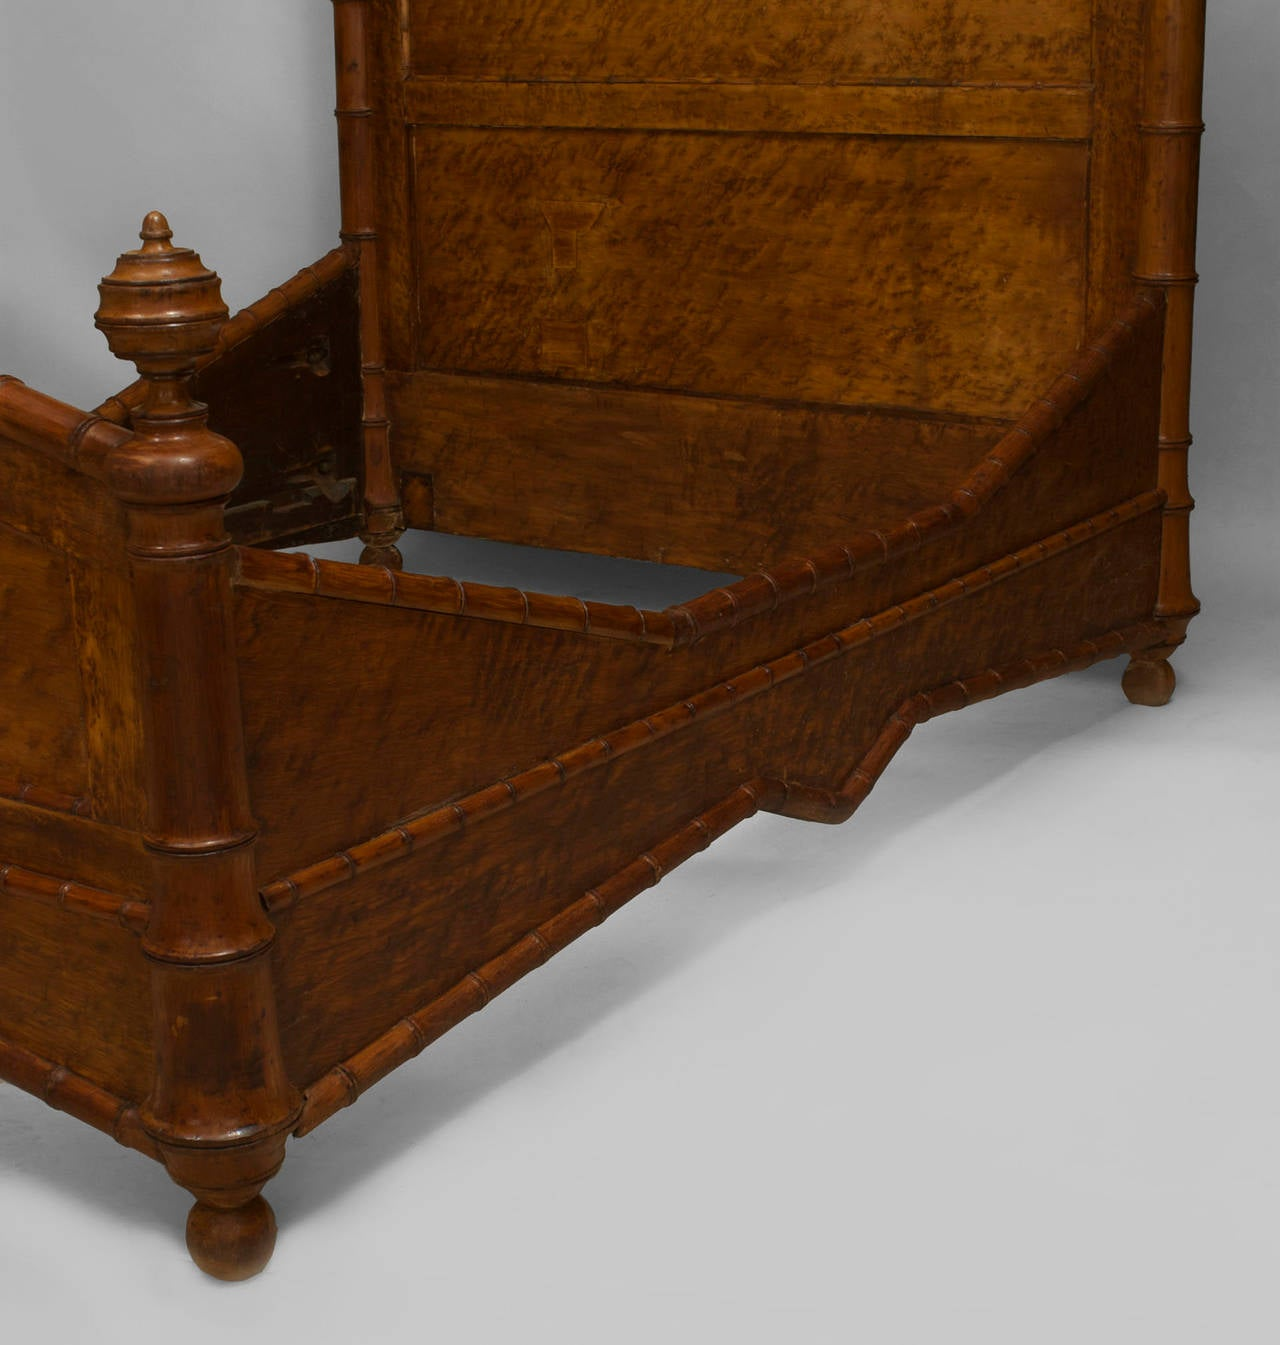 Late 19th century American Faux-Bamboo bird's eye maple queen-size bed with pediment top, finial sides, and faux bamboo carved trim (headboard, footboard, rails).